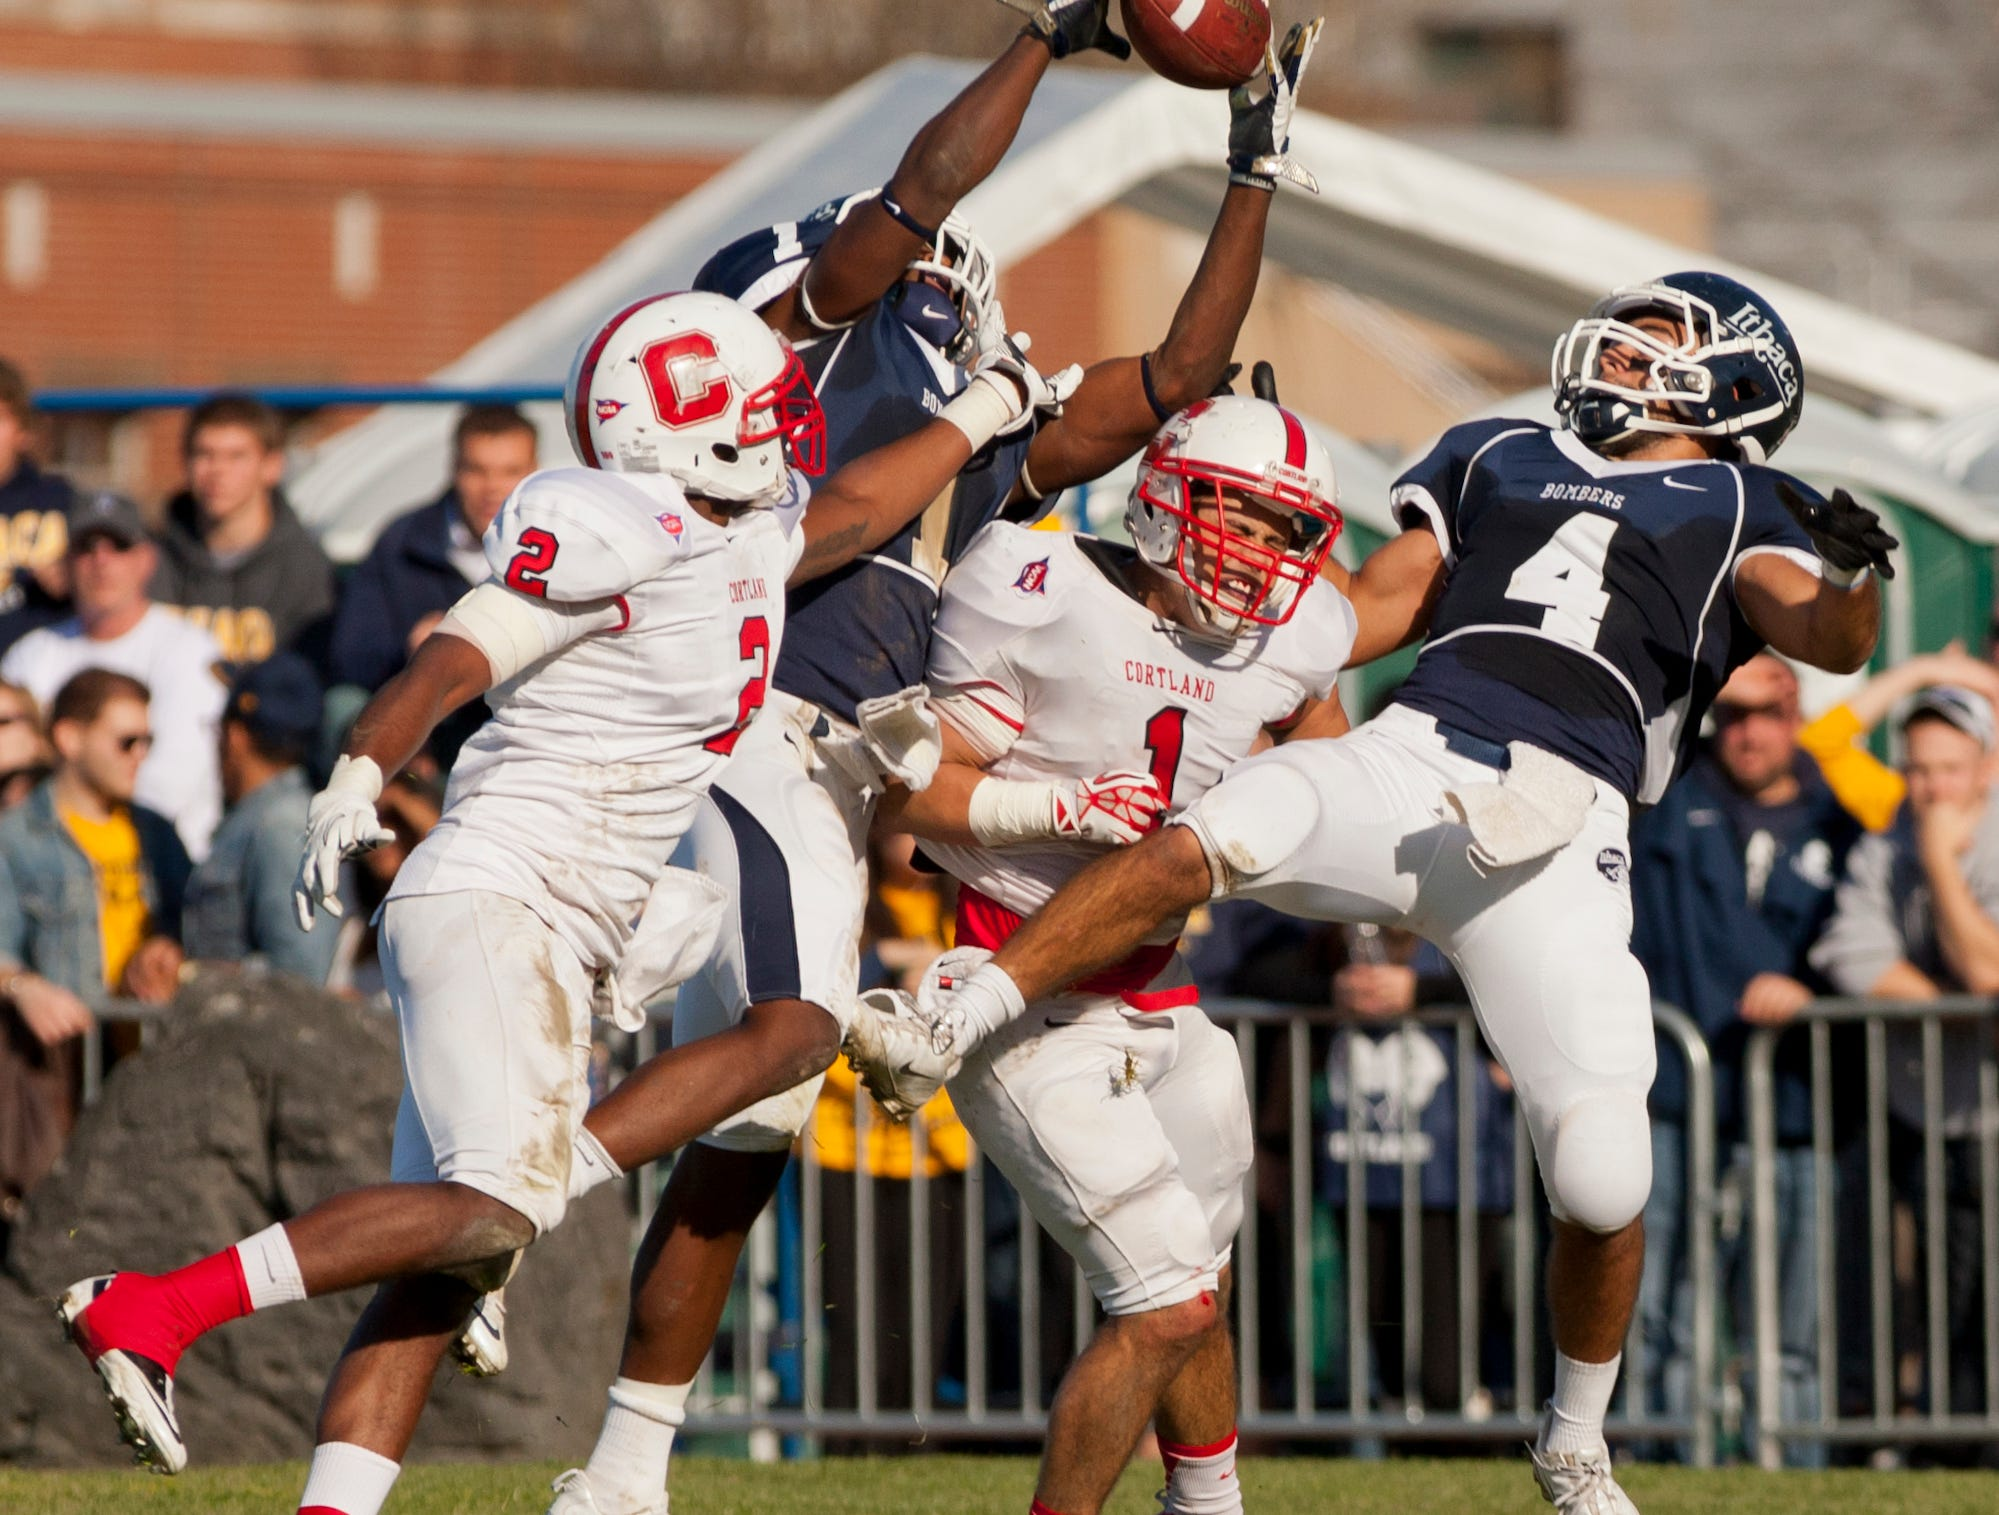 2013: From left Cortland's Ke'shaun Stallworth defends as Ithaca's Joel Lynch tries of hang on to a pass in the end zone as time expires in the second quarter with Cortland's Andrew Tolosi and Ithaca's Vito Boffoli, also battling for position under the 42 yard pass attempt